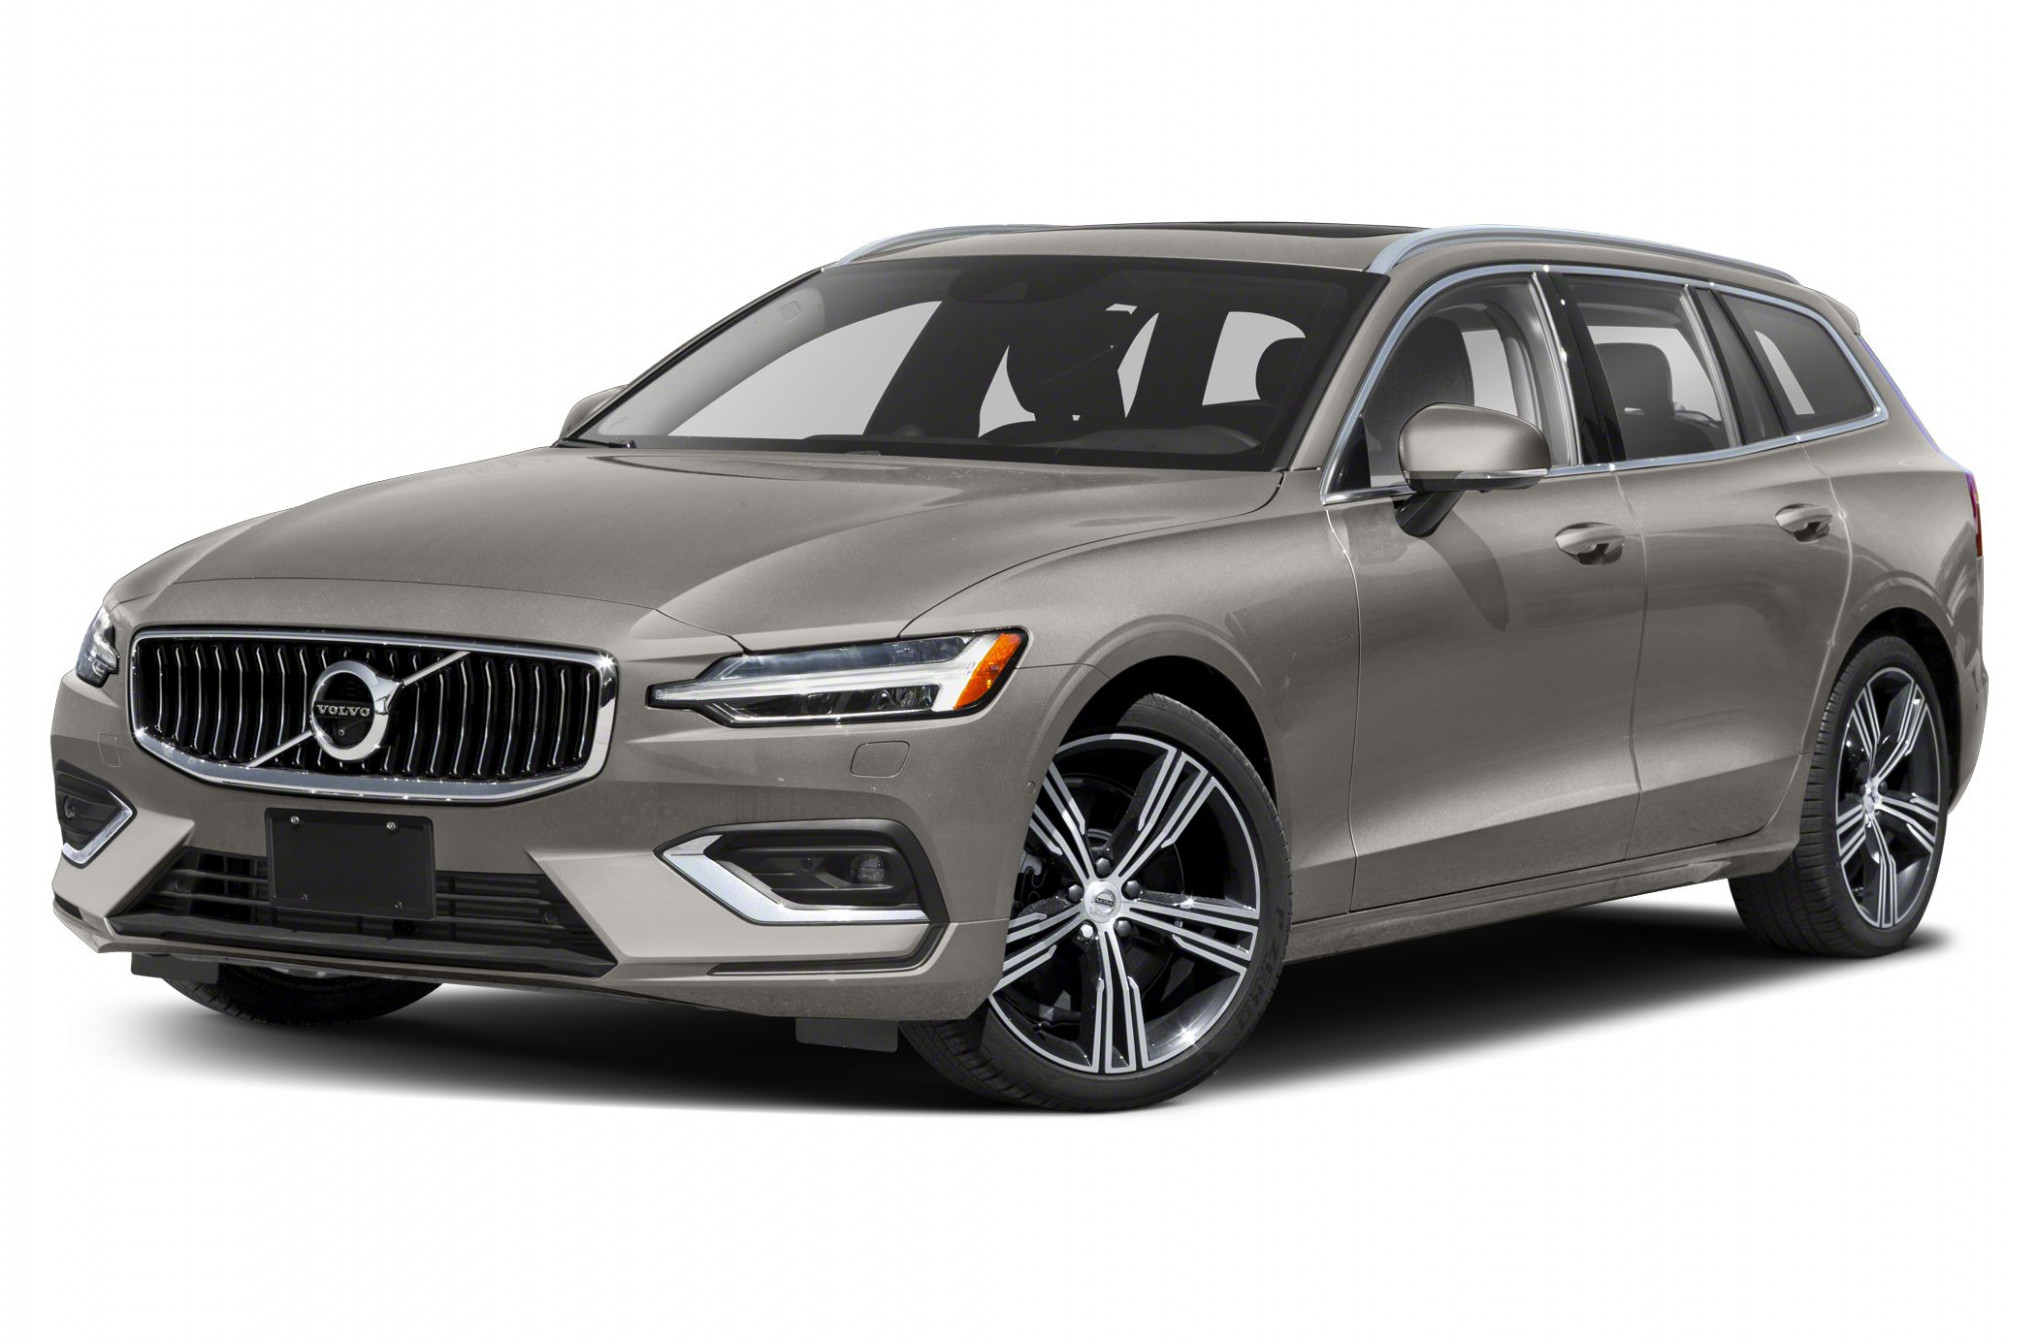 7 Volvo V7 Reviews, Specs, Photos - 2020 volvo models and prices